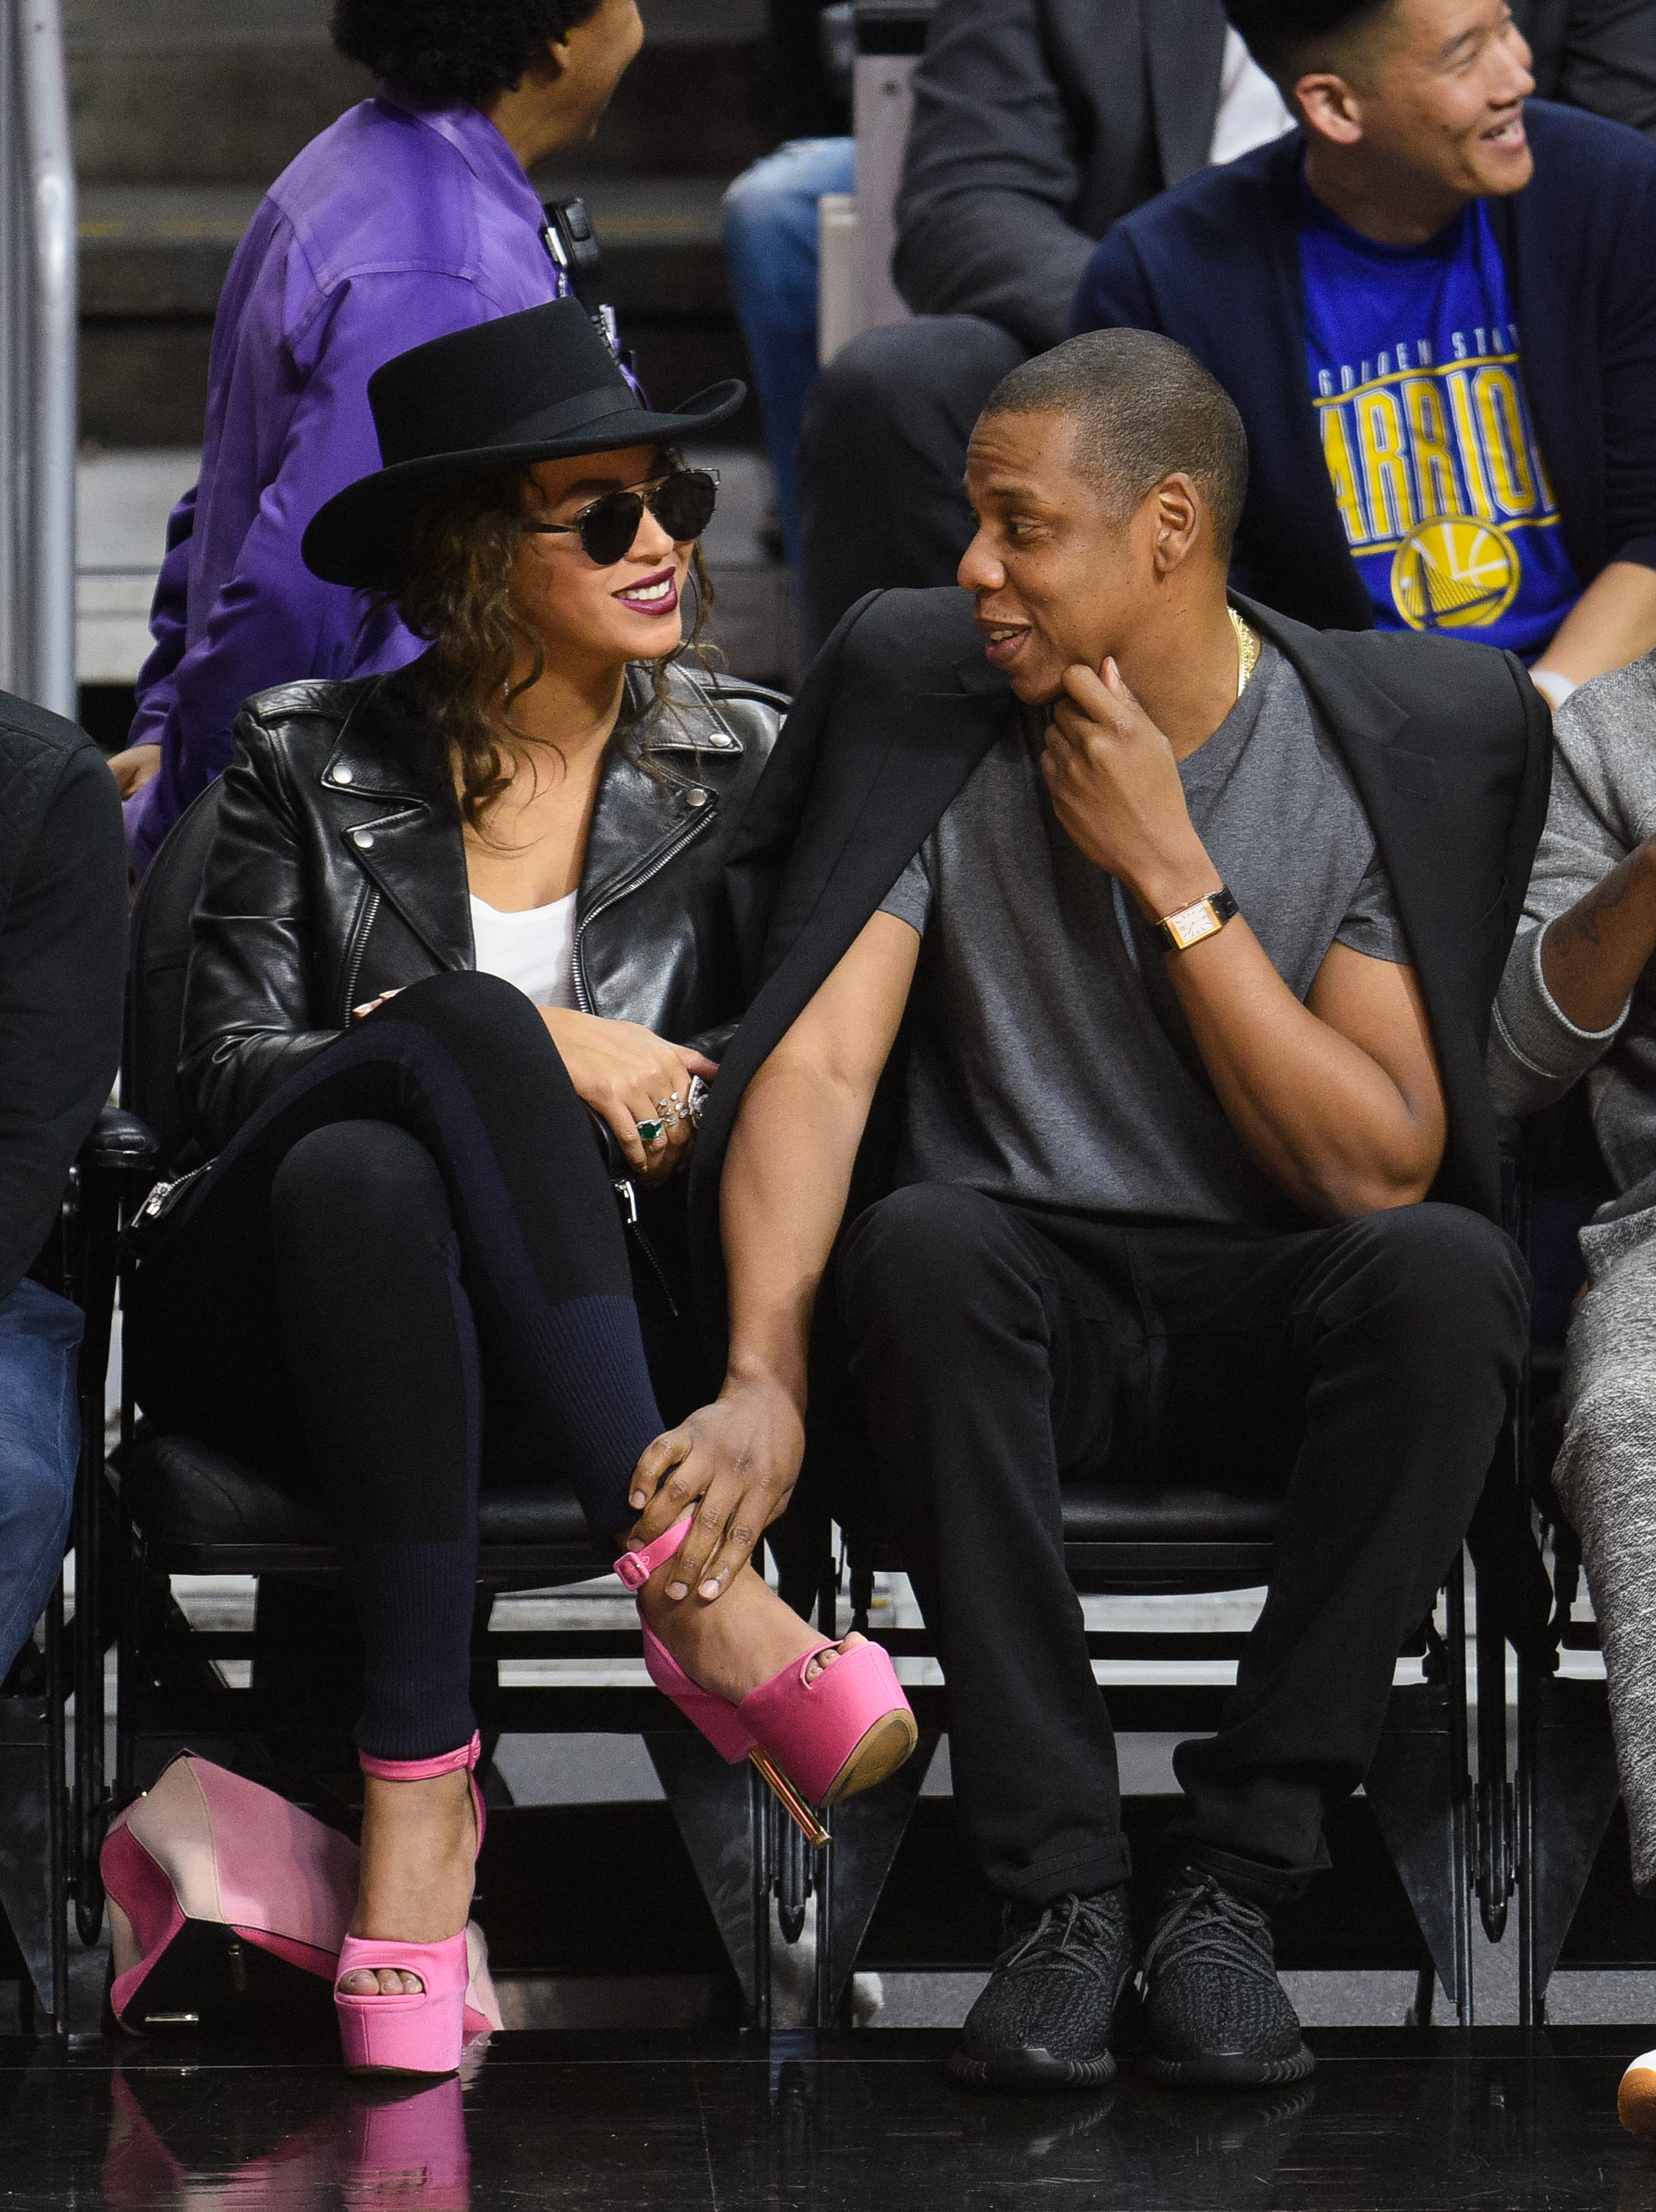 LOS ANGELES, CA - FEBRUARY 20: Beyonce (L) and Jay-Z attend a basketball game between the Golden State Warriors and the Los Angeles Clippers at Staples Center on February 20, 2016 in Los Angeles, California. (Photo by Noel Vasquez/GC Images)